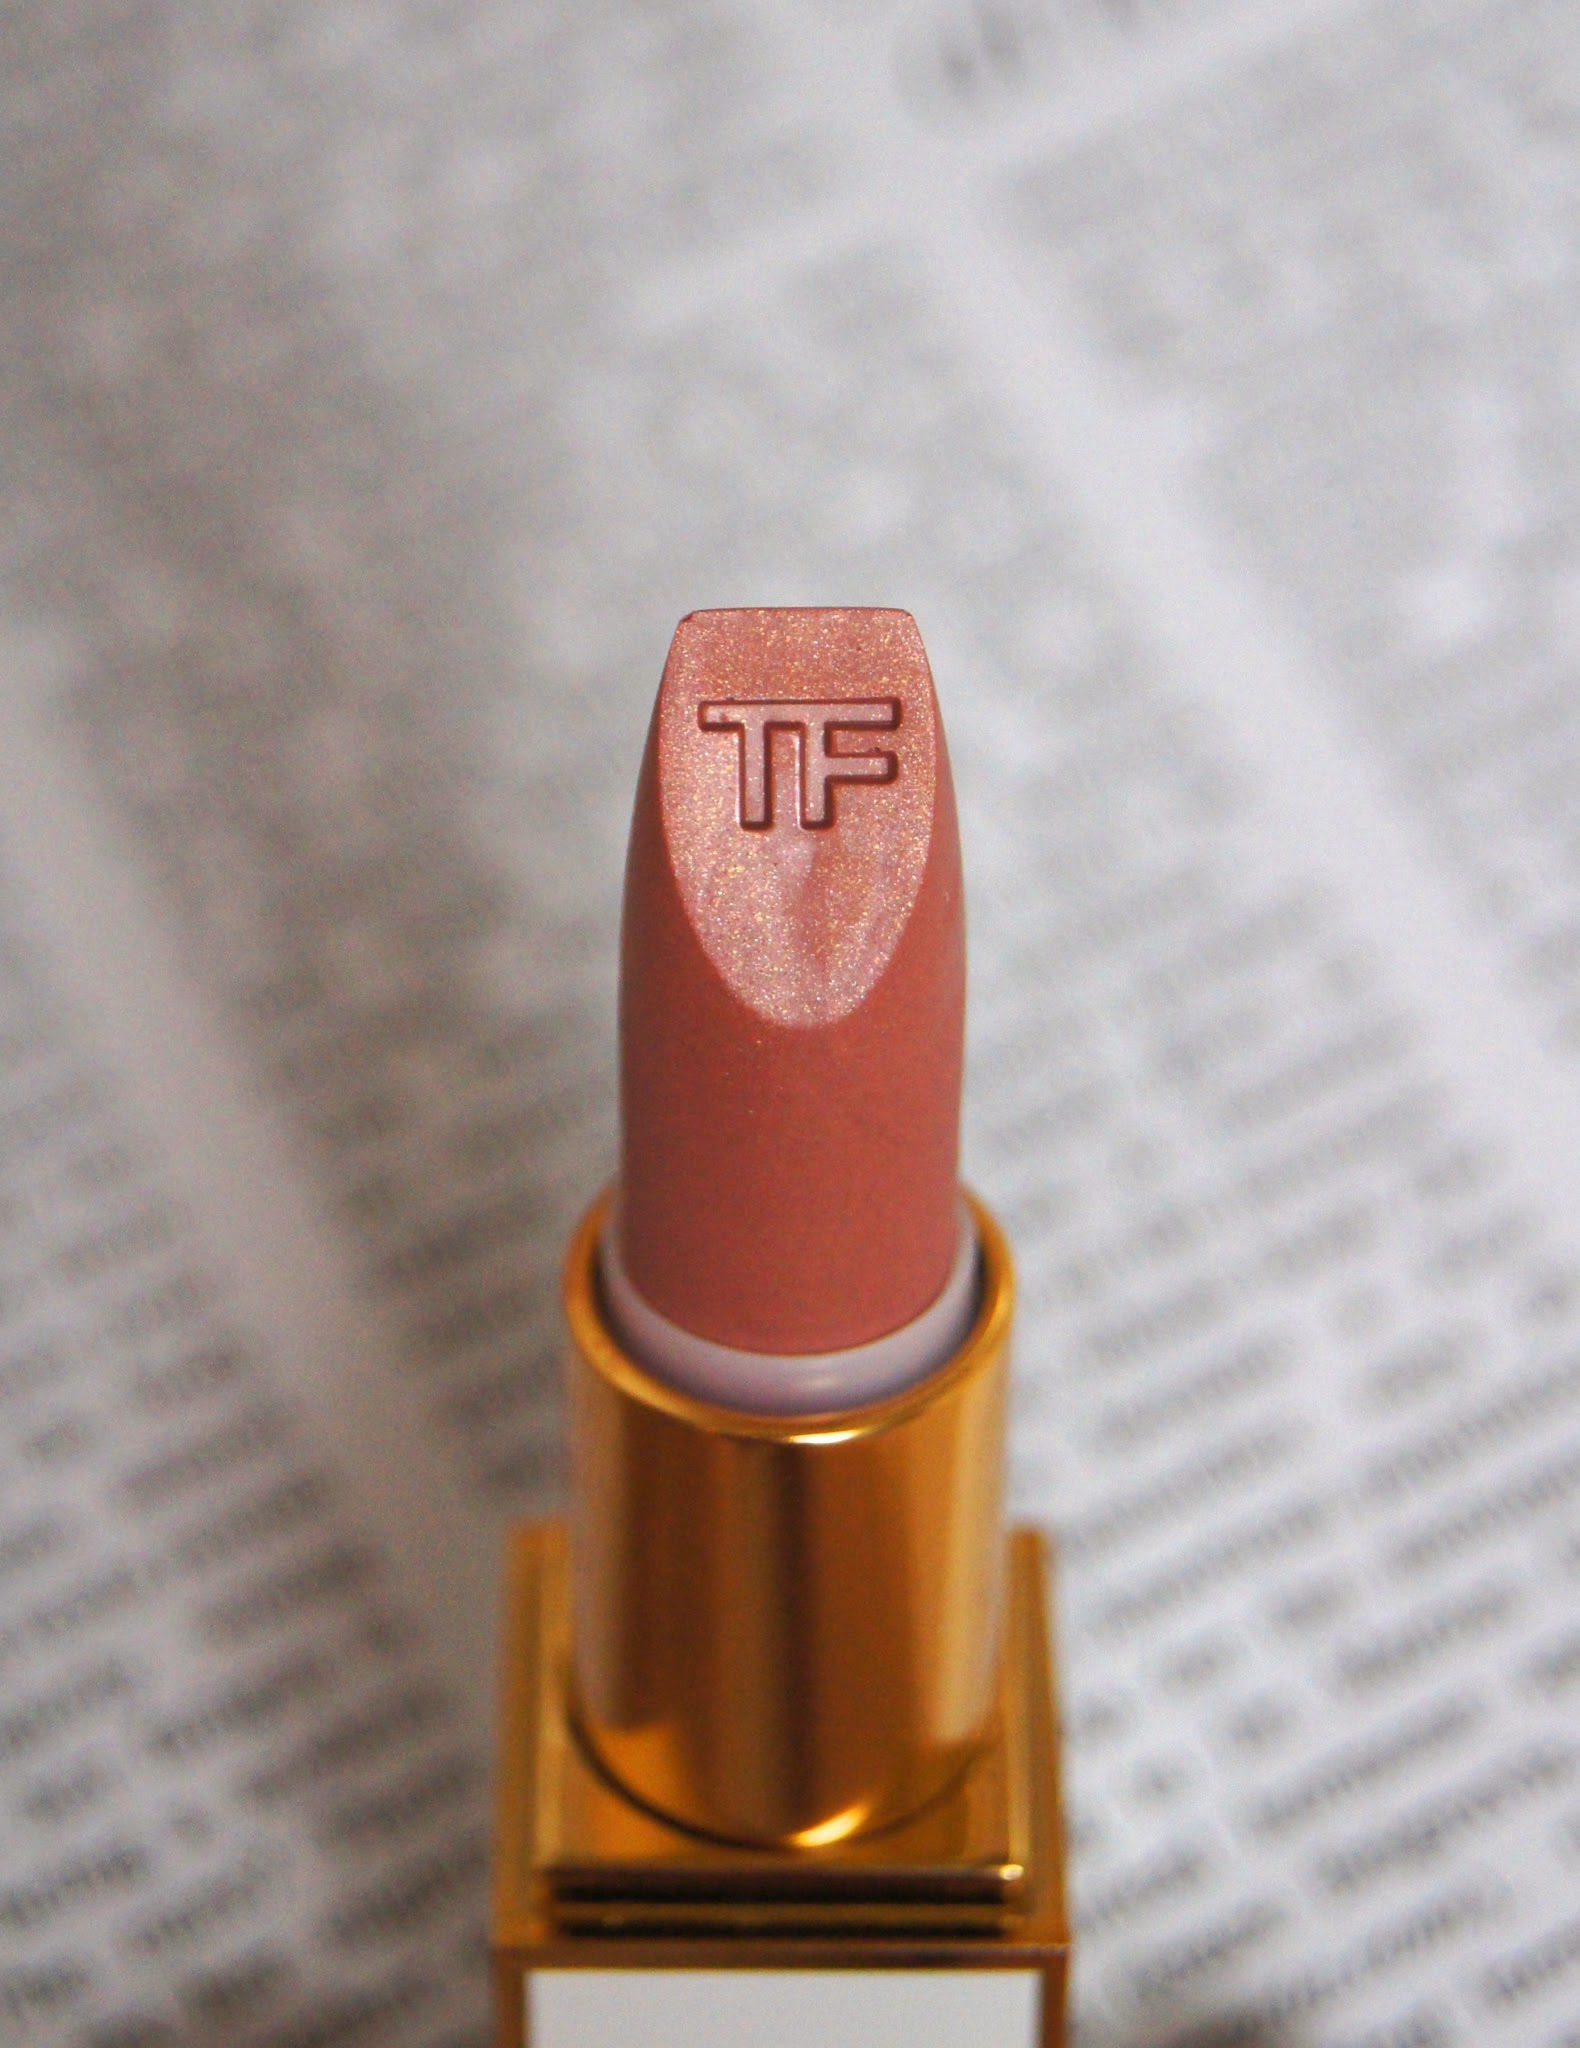 tom ford color sheer lipstick review swatch 01 in the buff